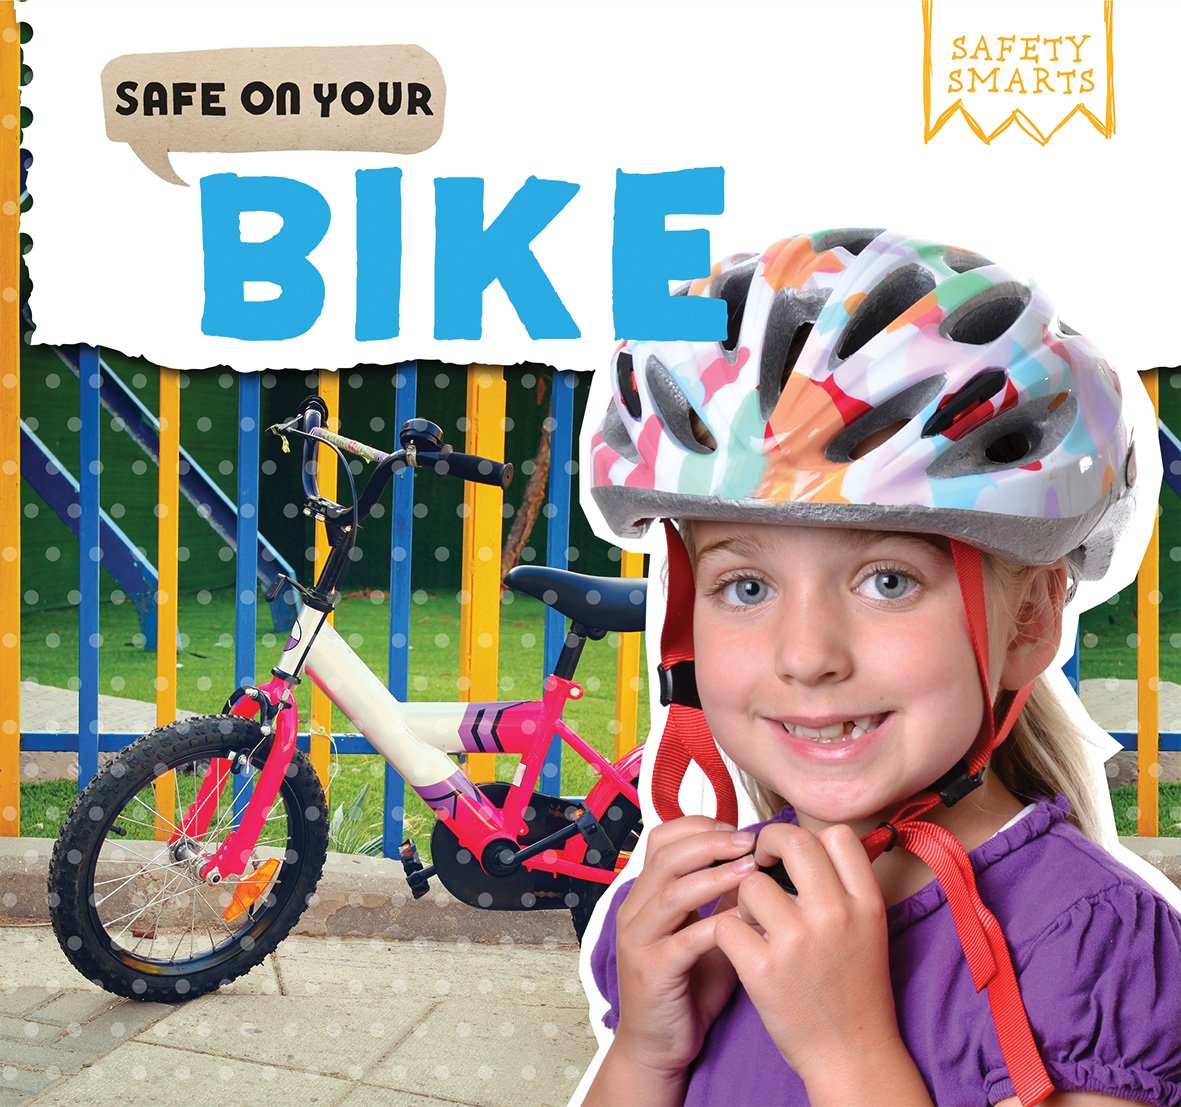 Safe on Your Bike (Safety Smarts) by Powerkids Pr (Image #1)